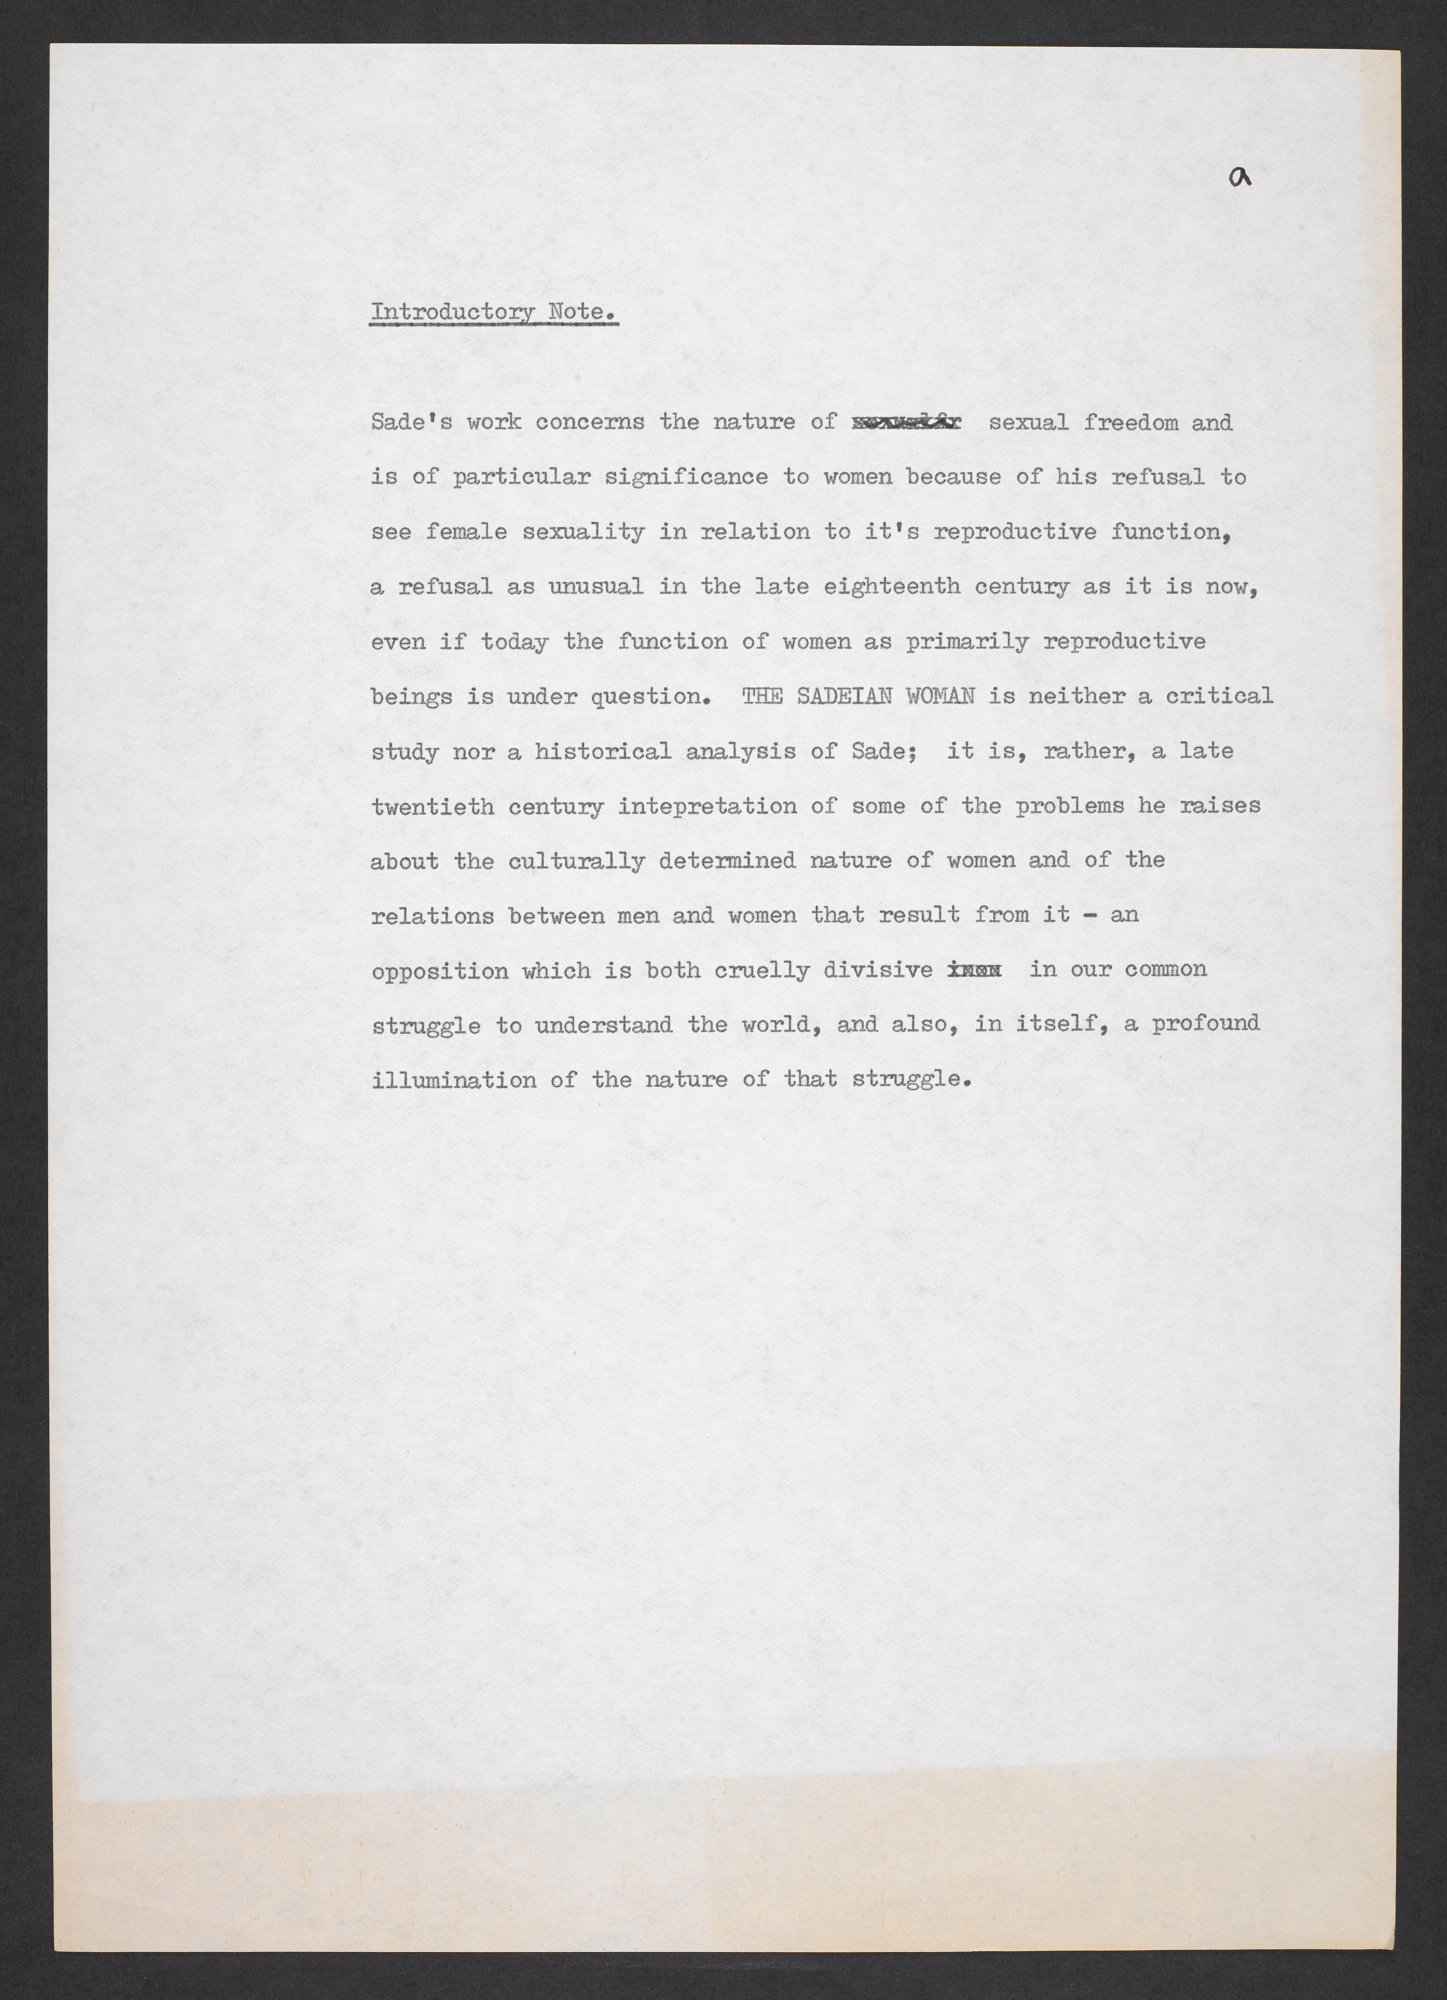 Typescript draft of The Sadeian Woman by Angela Carter